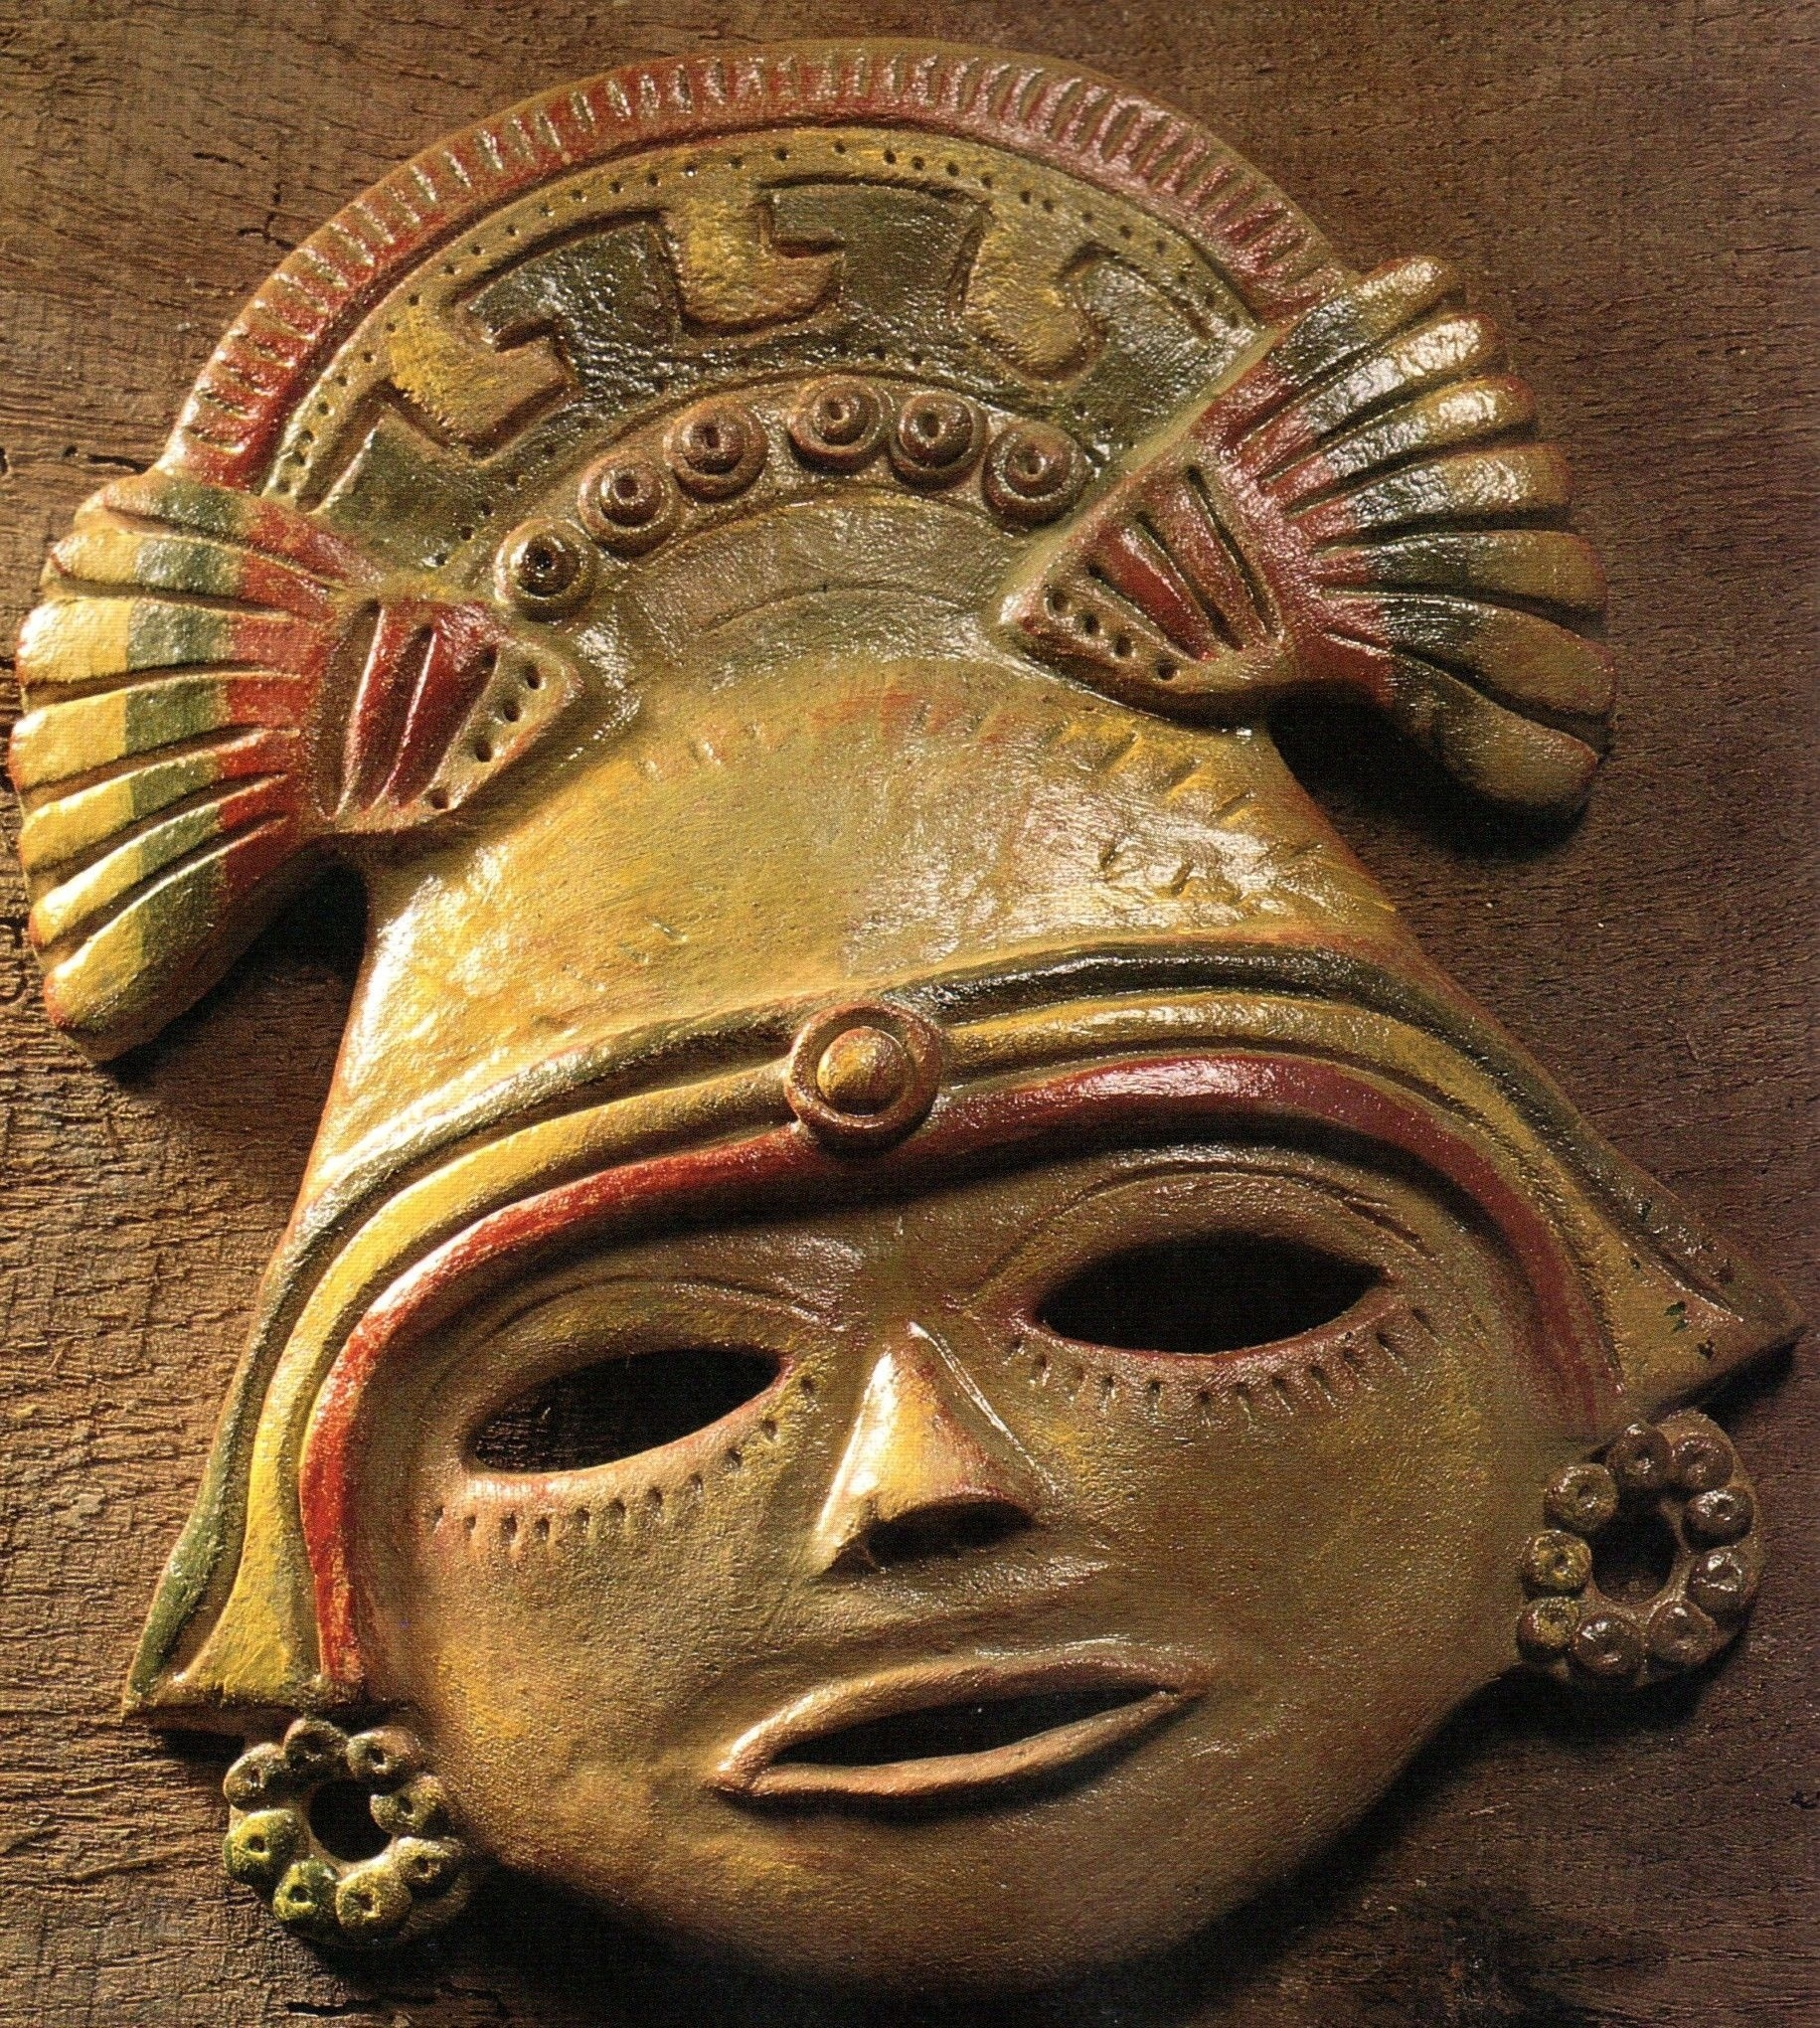 Aztec Masks - Google Search | Research The Circular Ruins  Aztec Masks And Ther Meanings